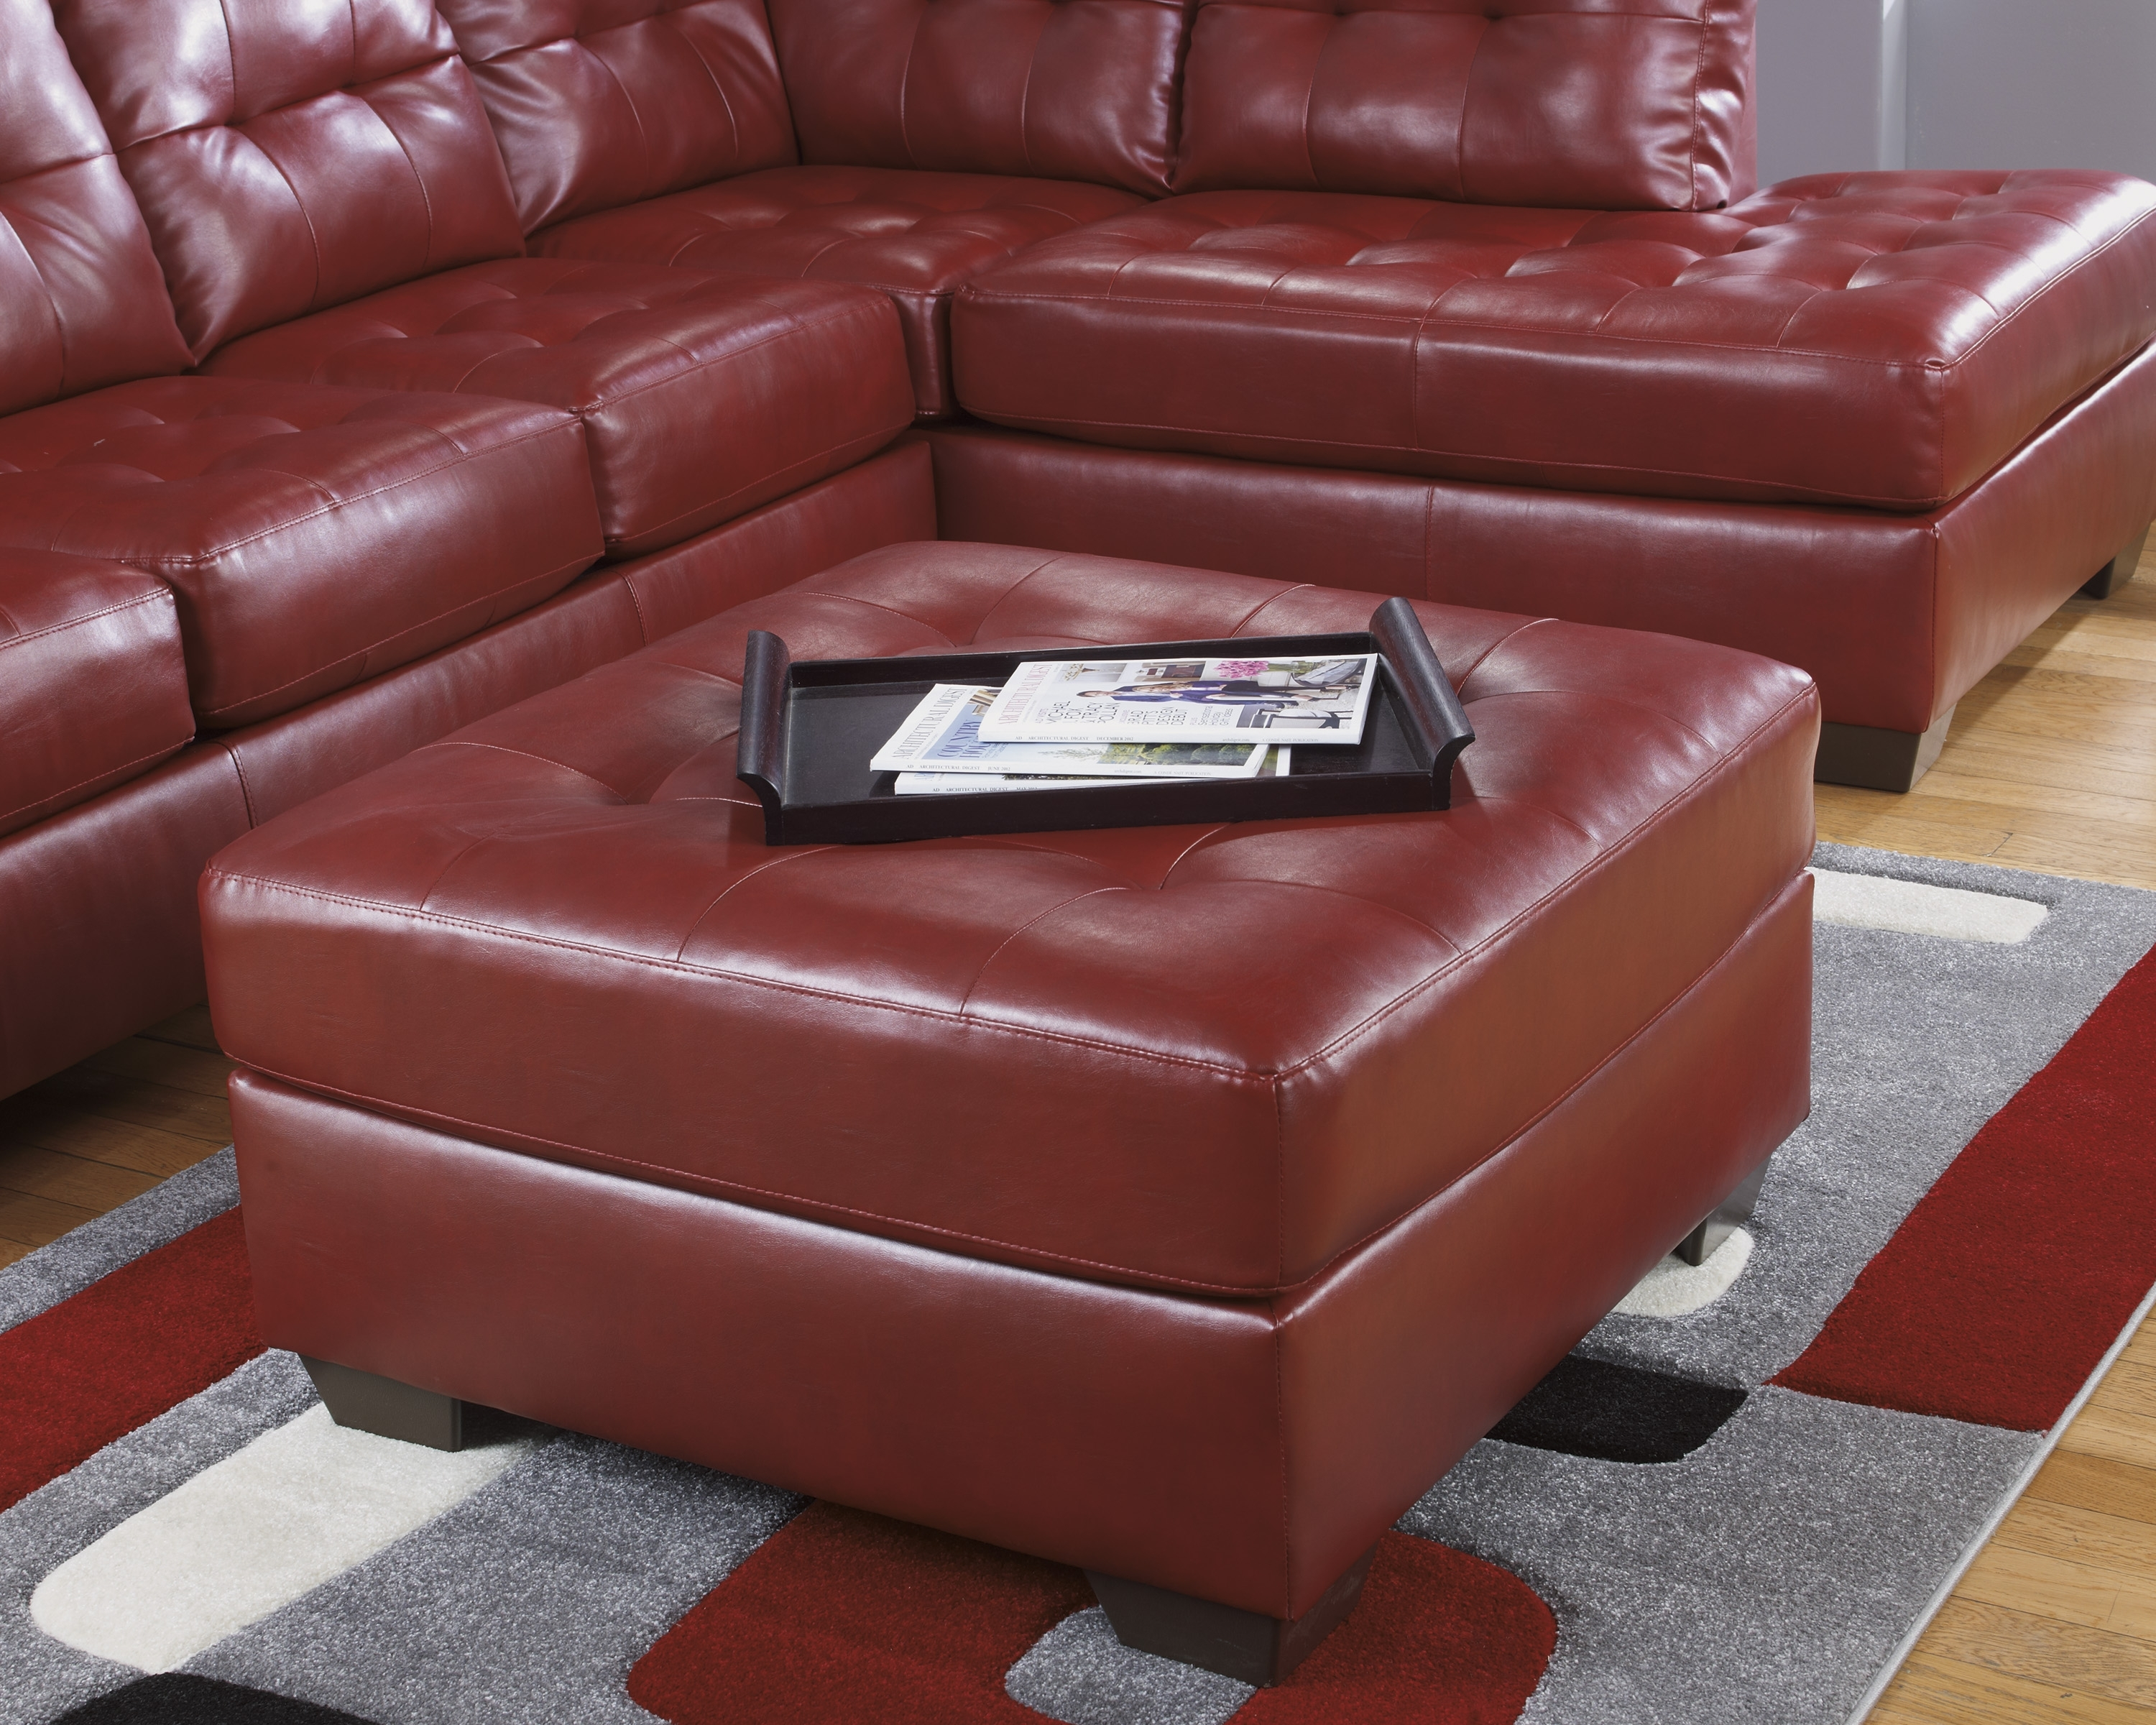 Ashley Furniture Leather Sectionals, Ashley Furniture Sofa Sleepers With Regard To Red Leather Sectional Sofas With Ottoman (Image 3 of 10)